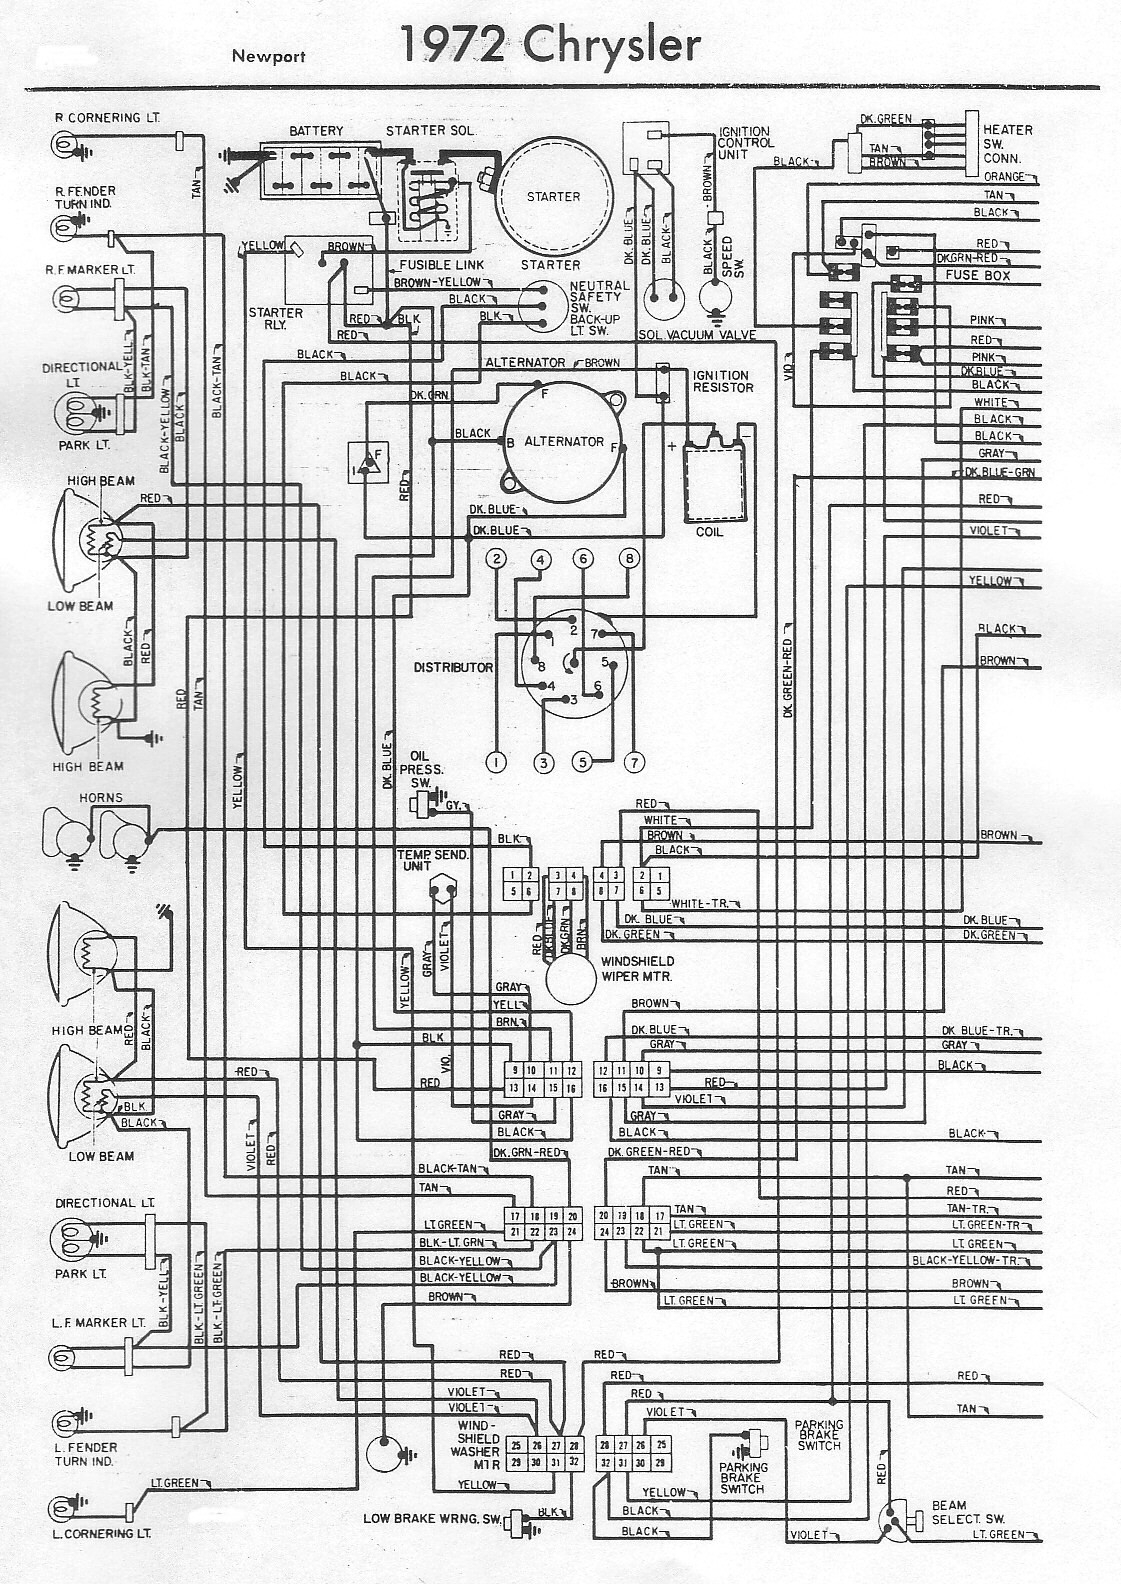 1970 Chrysler Alternator Diagram Diy Enthusiasts Wiring Diagrams Plymouth Turn Signal Charging System 1972 Chevrolet Rh Banyan Palace Com 05 300 1 Wire Conversion